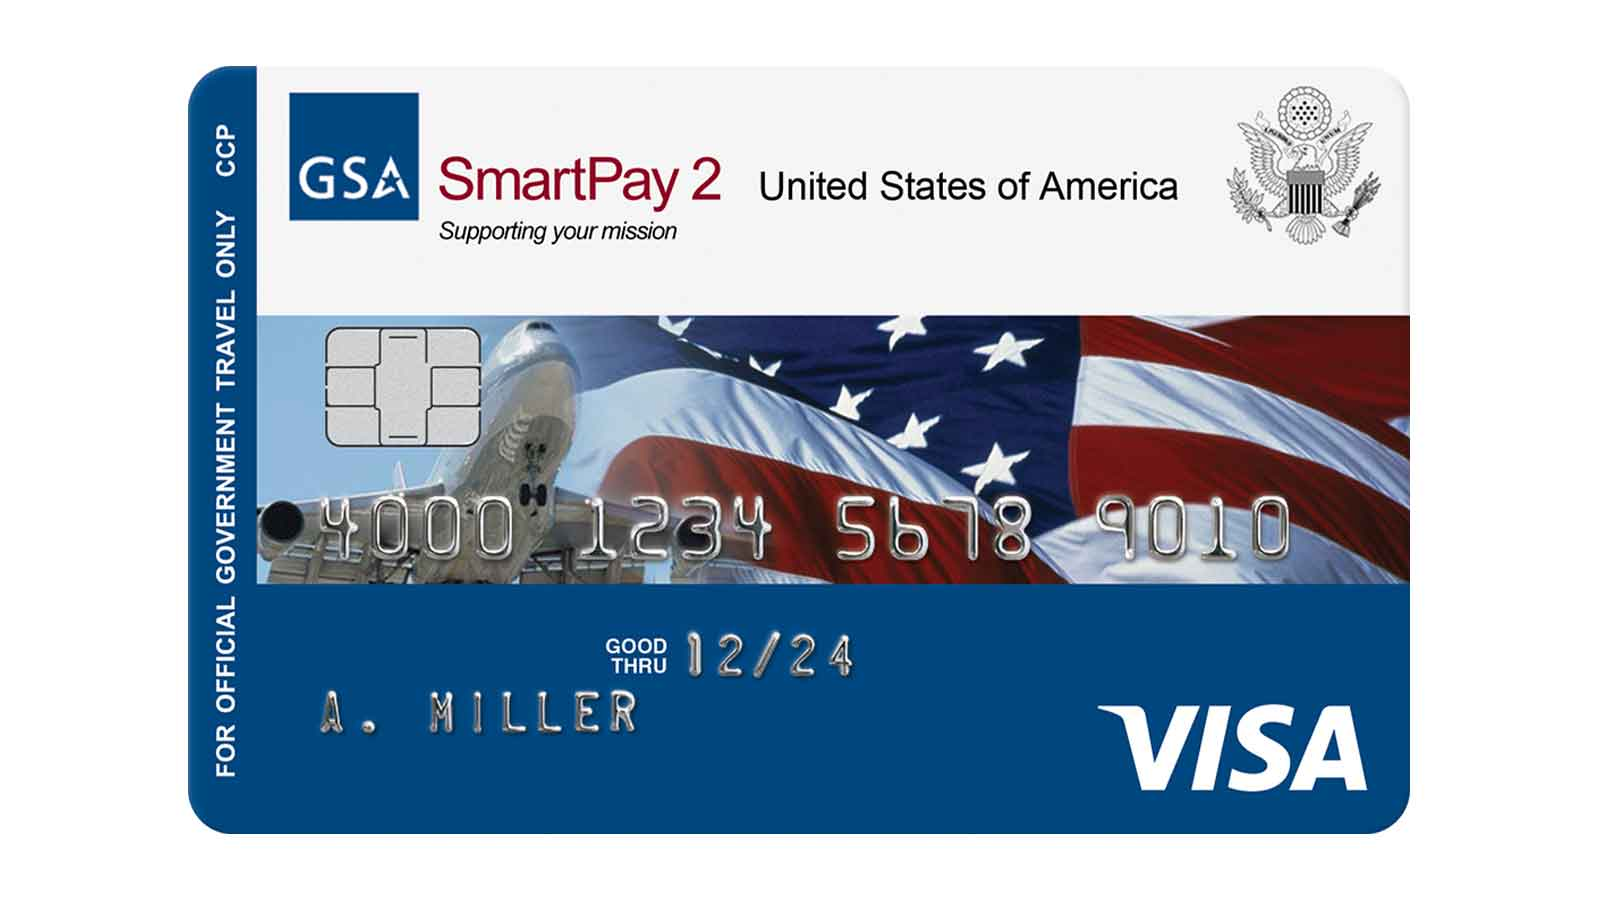 visa-gov-travel-1600x900